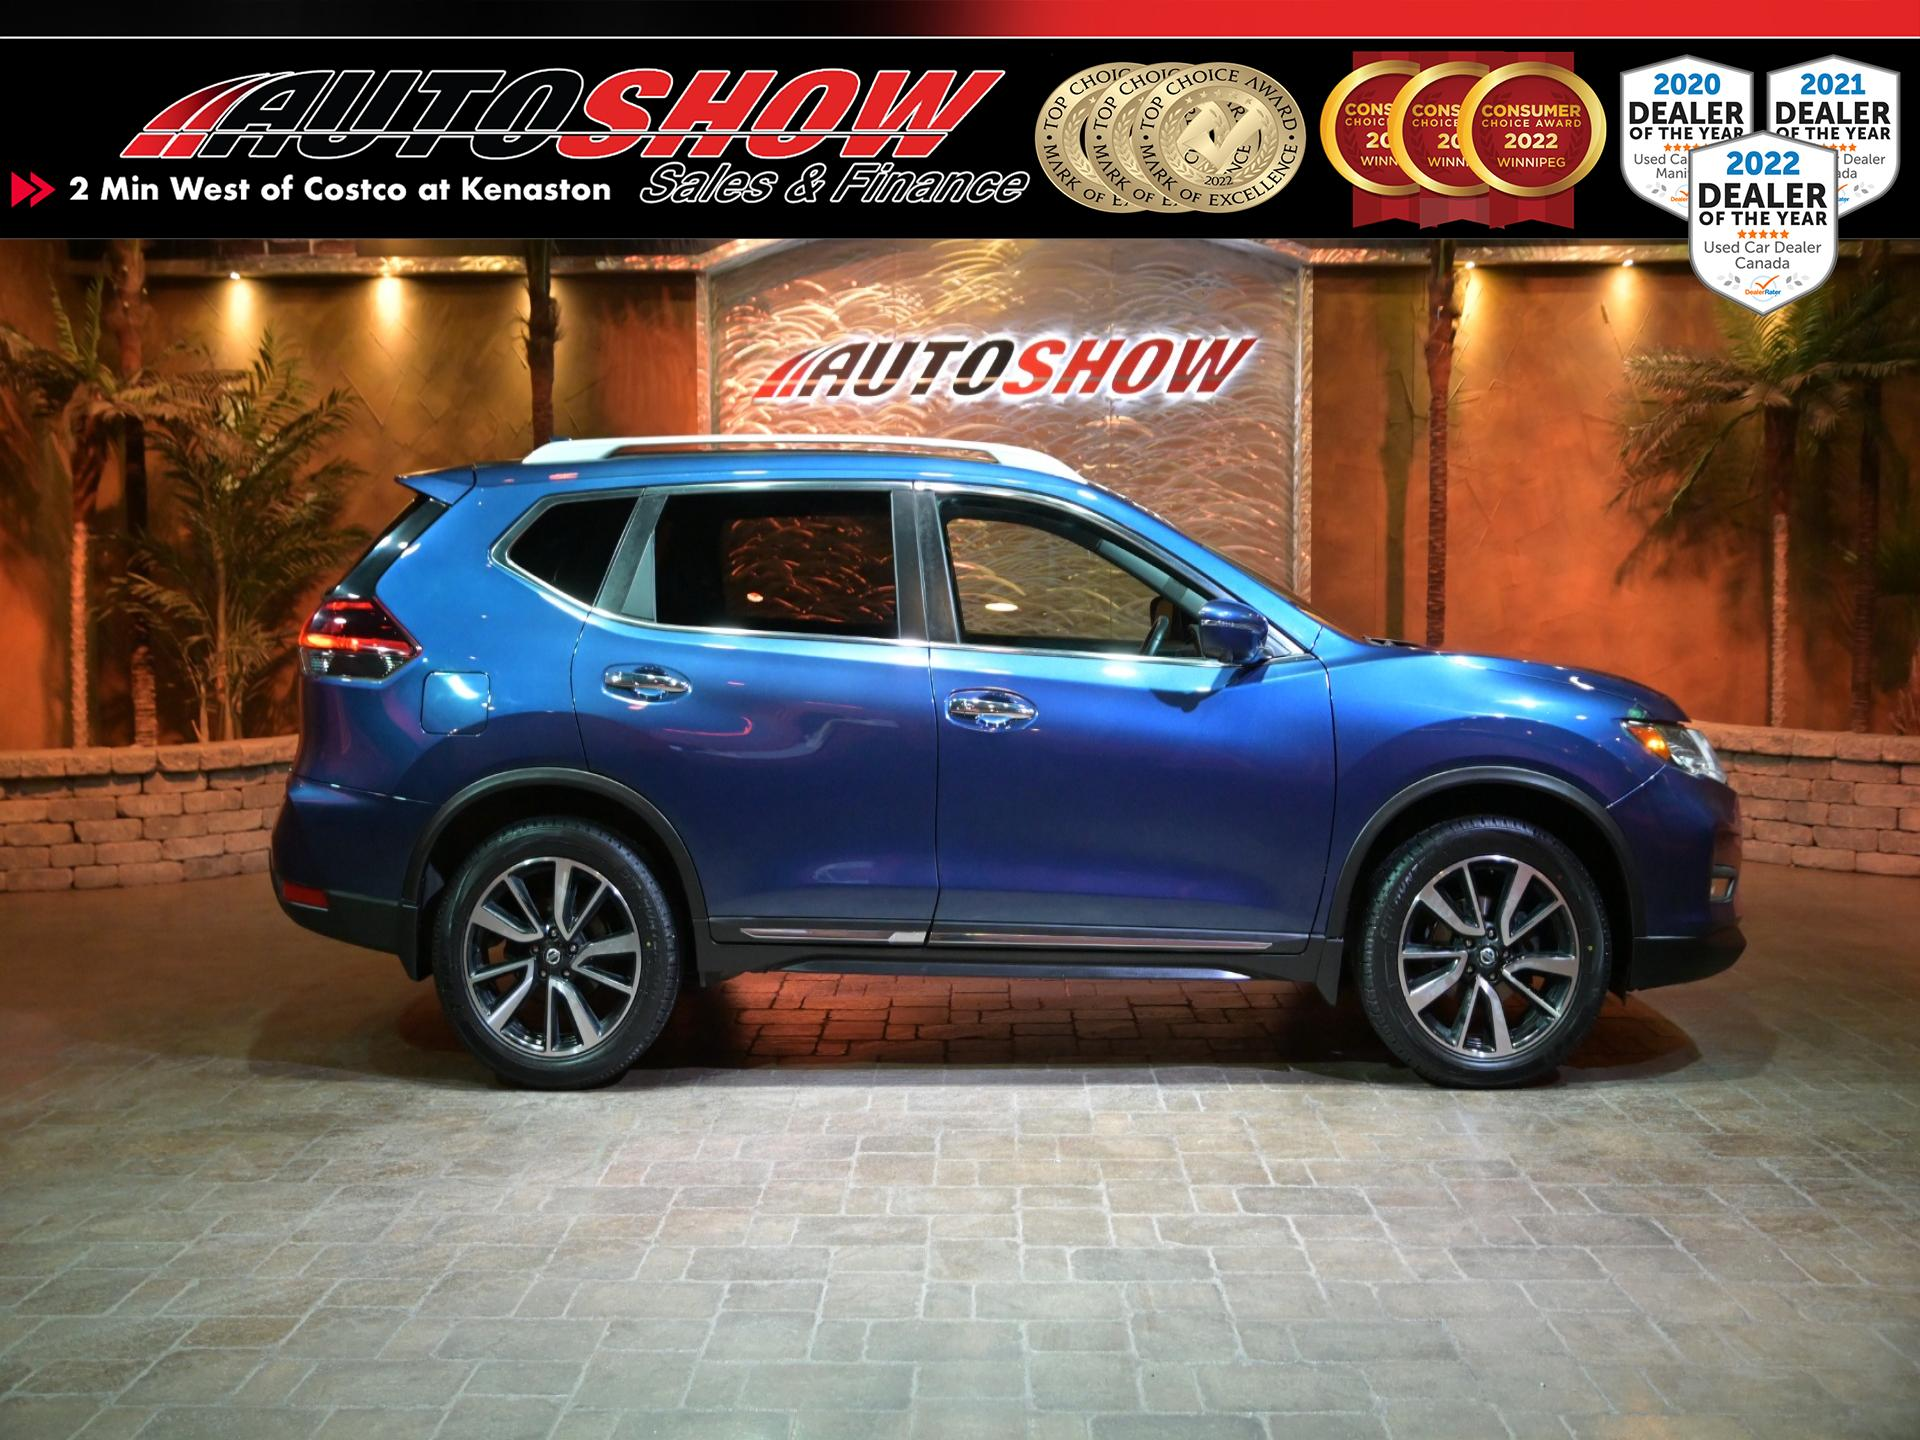 used 2018 Nissan Rogue car, priced at $22,800